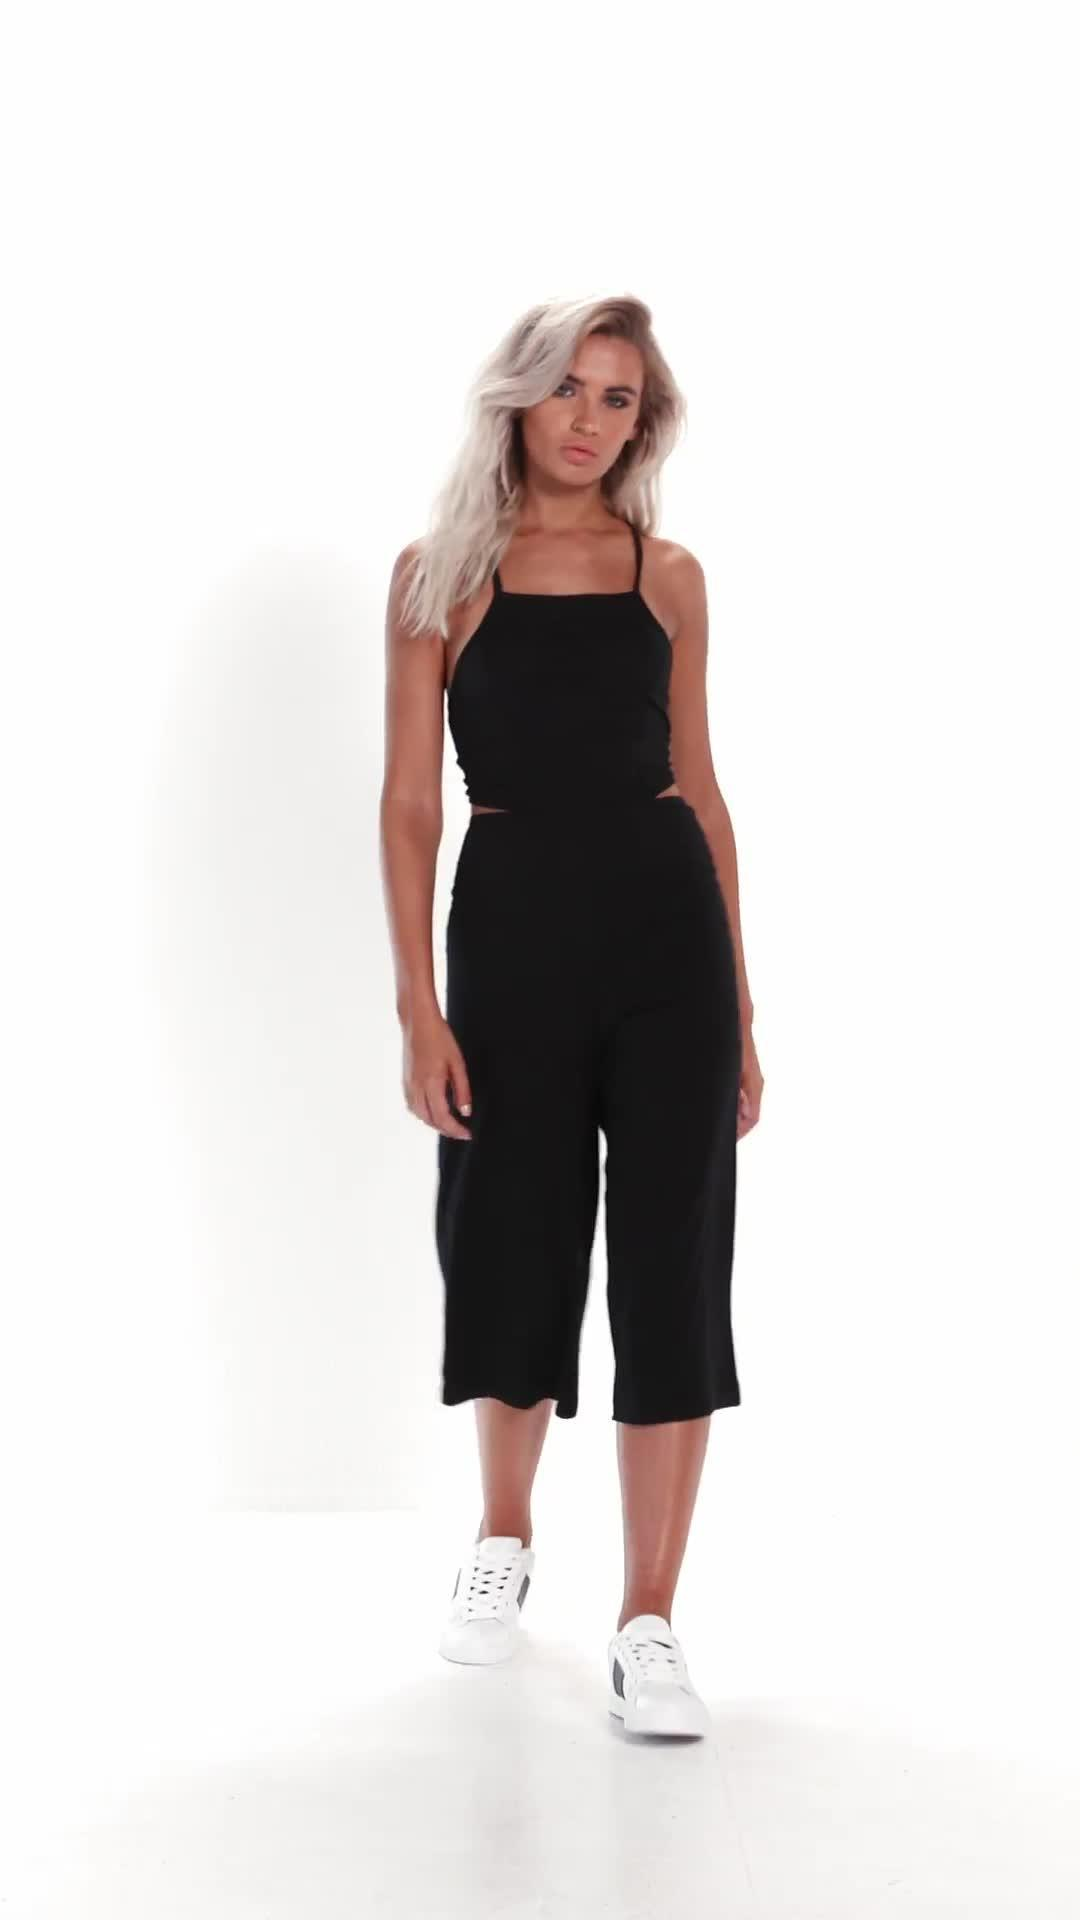 d6ded035919 Missguided - Black Jersey Tie Back Cut Out Culotte Jumpsuit - Lyst. View  fullscreen